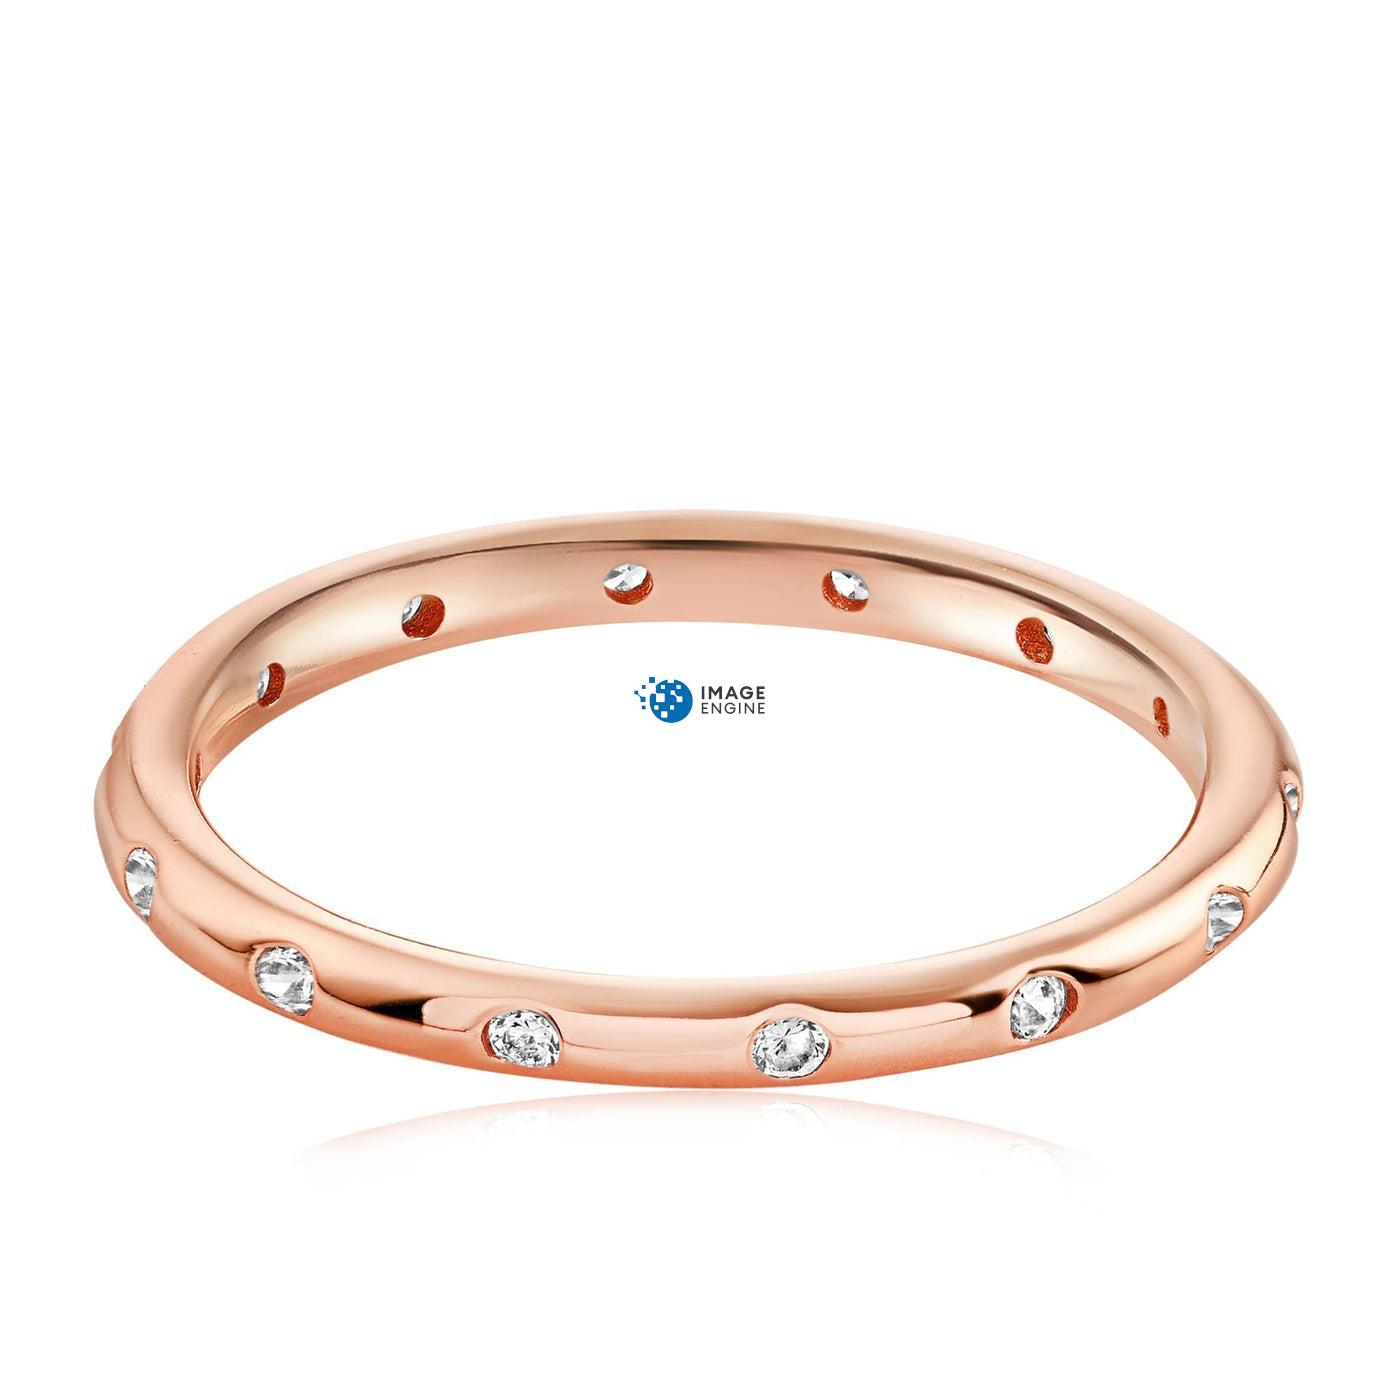 Droplet Ring - Front View Facing Down - 18K Rose Gold Vermeil